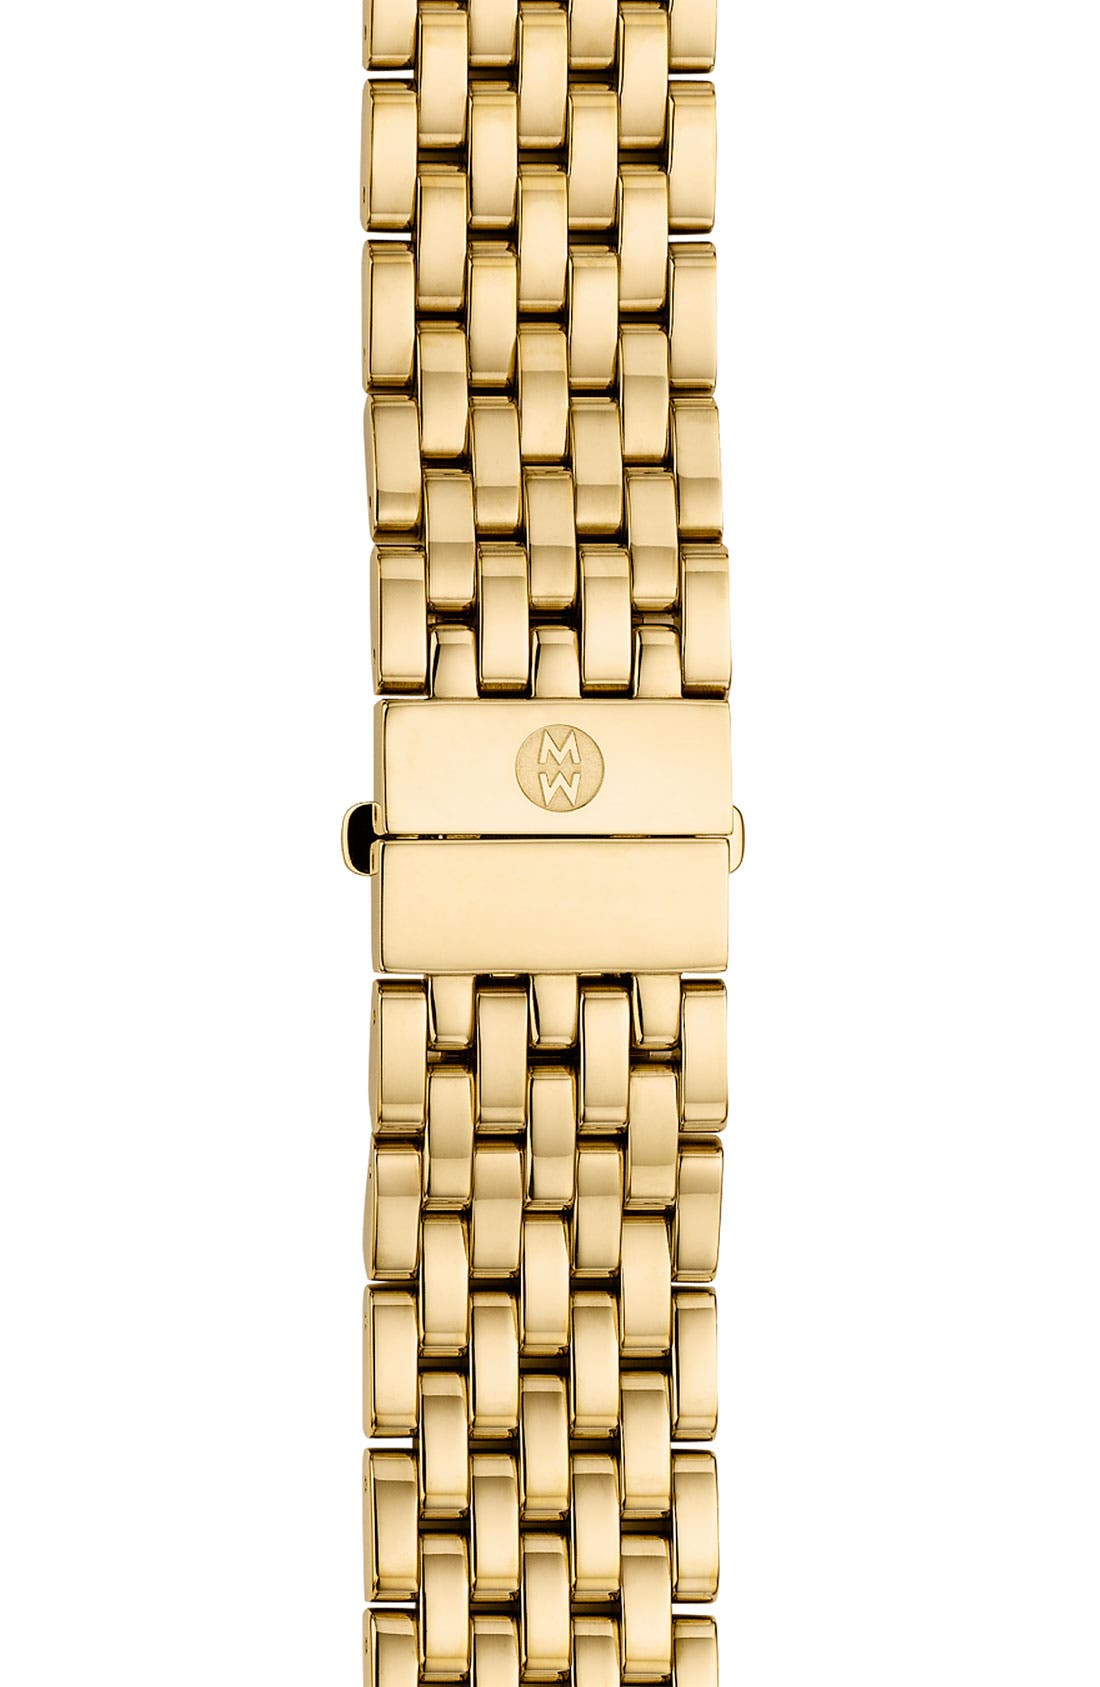 Alternate Image 1 Selected - MICHELE 'CSX-36' 18mm Gold Plated Bracelet Watchband (Limited Edition)